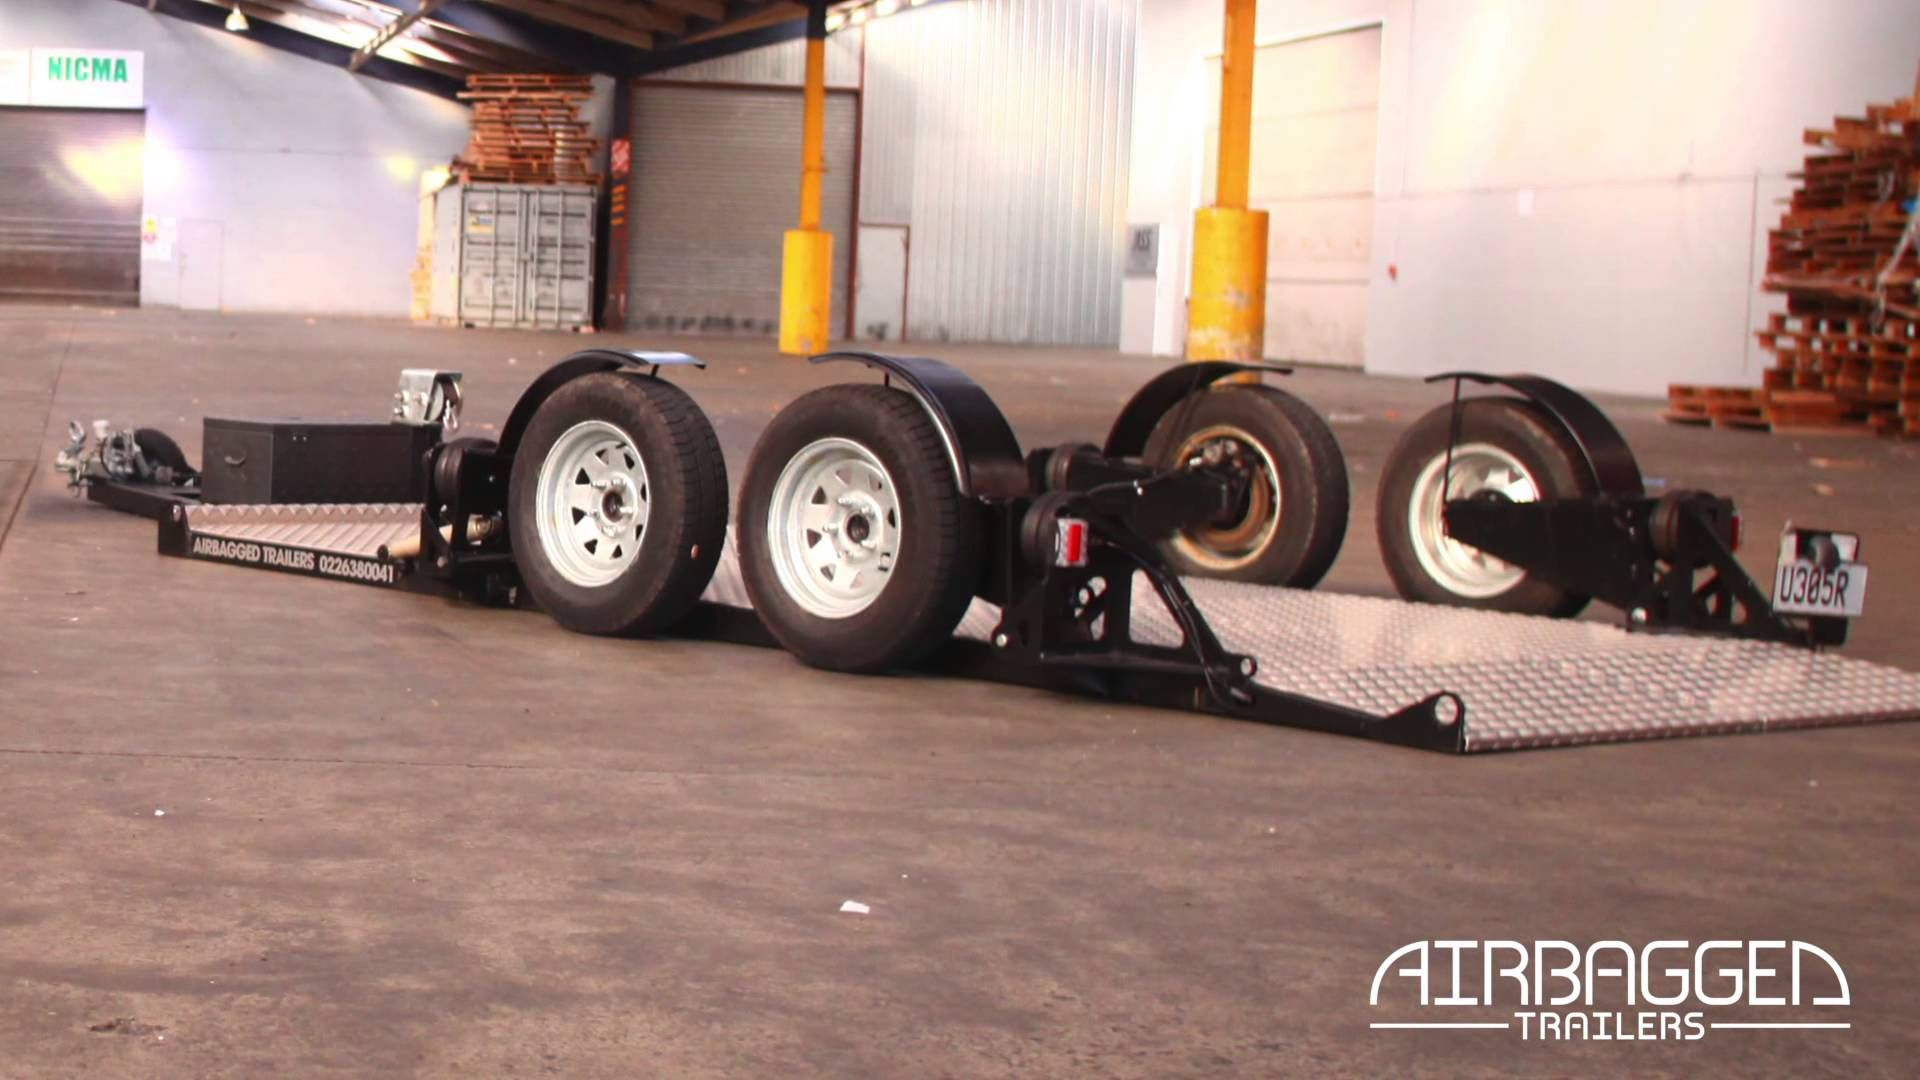 Airbagged trailers are the ultimate car trailer for smooth towing and easy loading this video shows the first prototype from so please see our other v